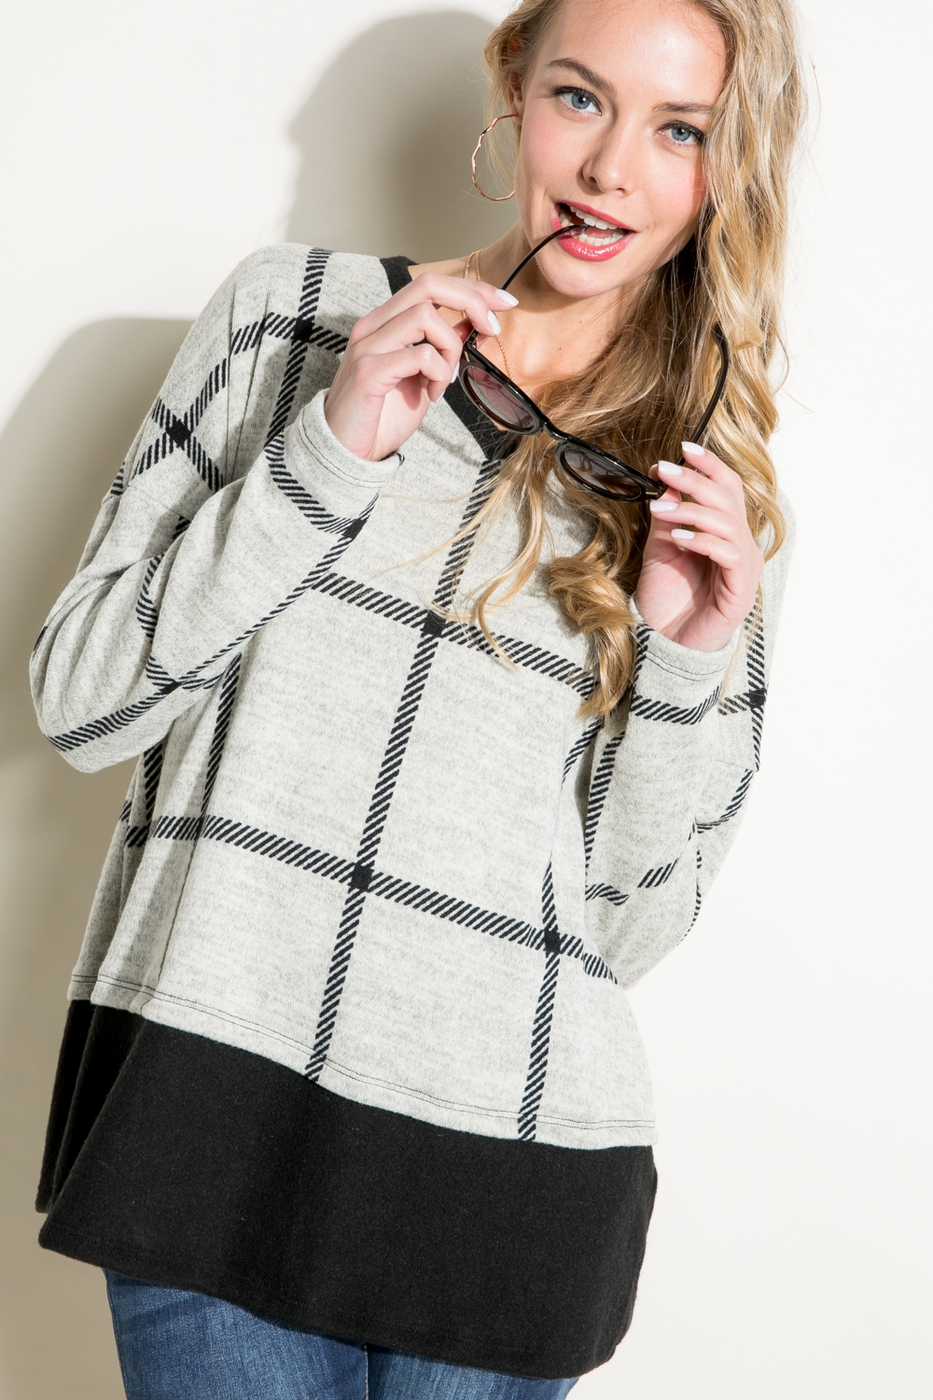 SOLID PLAID PRINT V NECK BOXY TOP - orangeshine.com